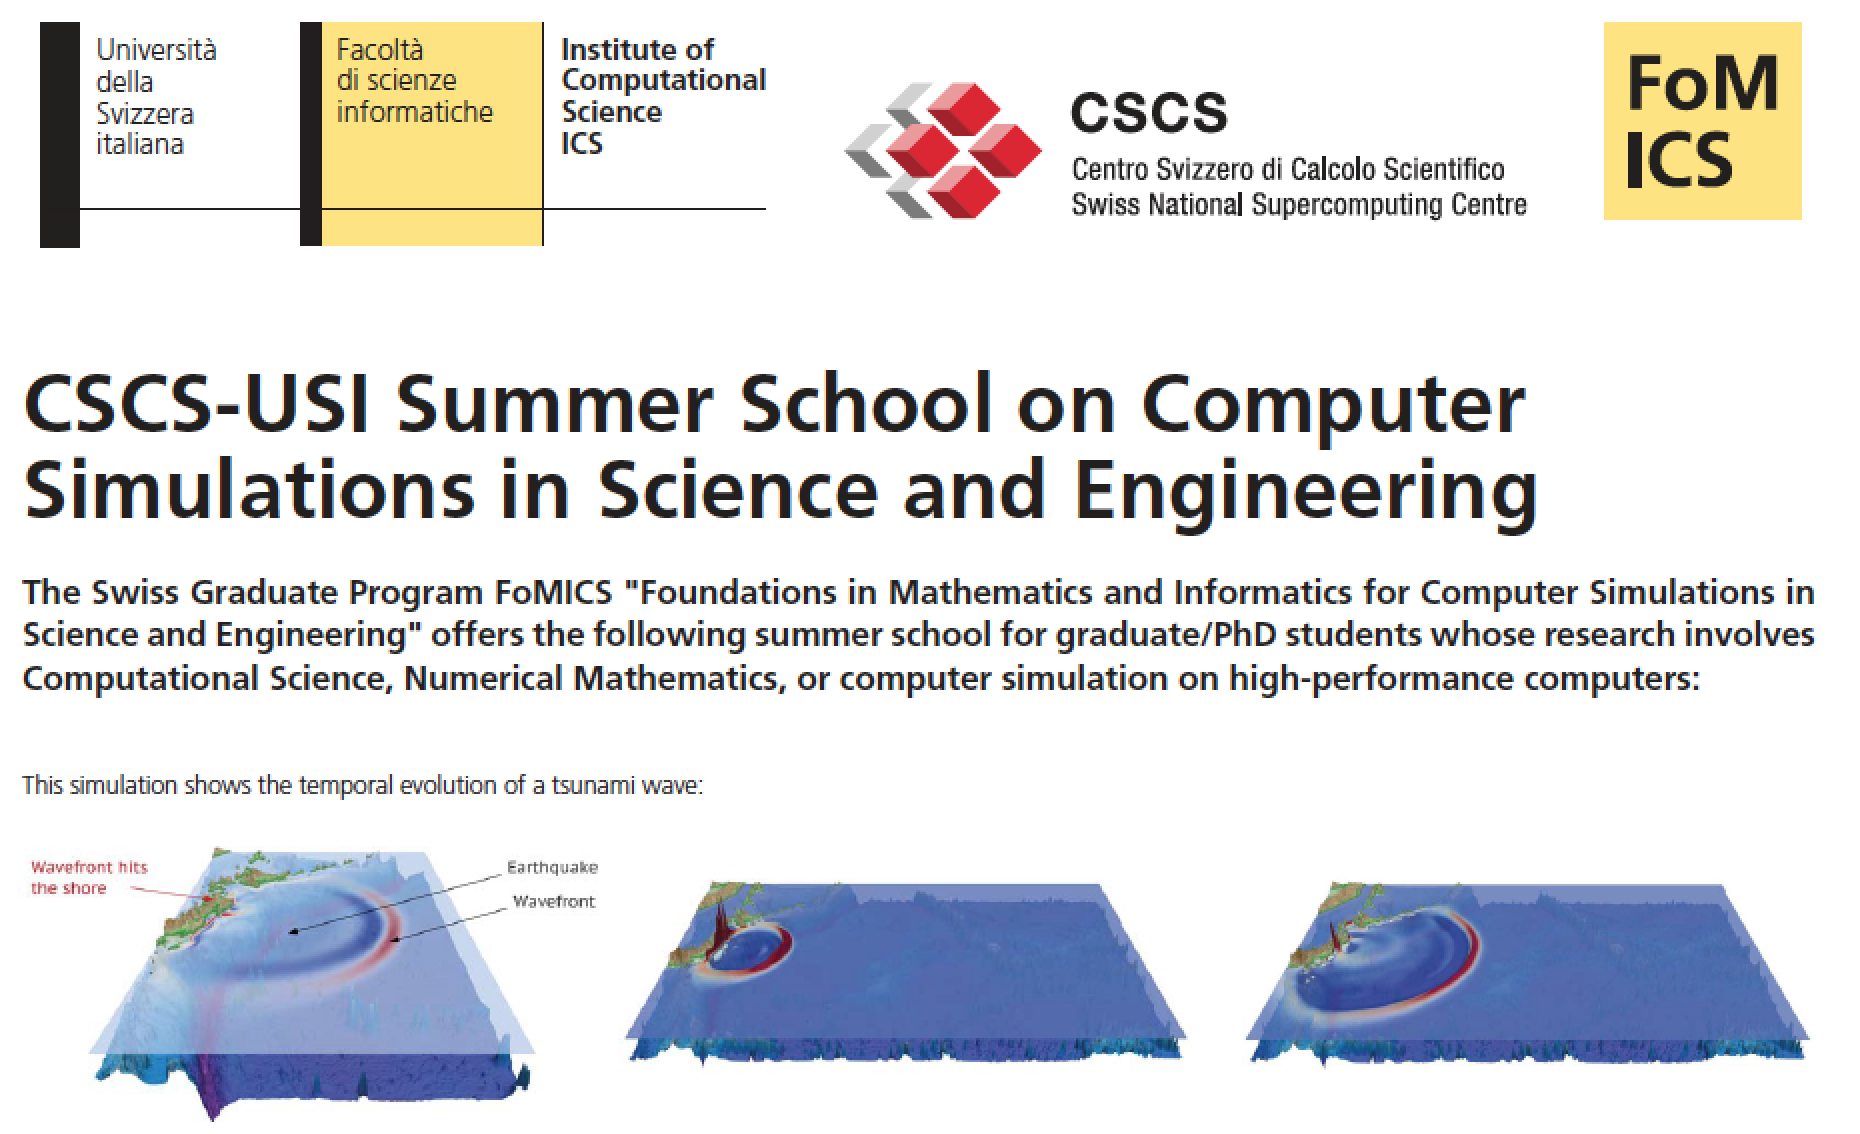 CSCS-USI Summer School on Computer Simulations in Science and Engineering, 8-19 July 2013, Lugano, Switzerland